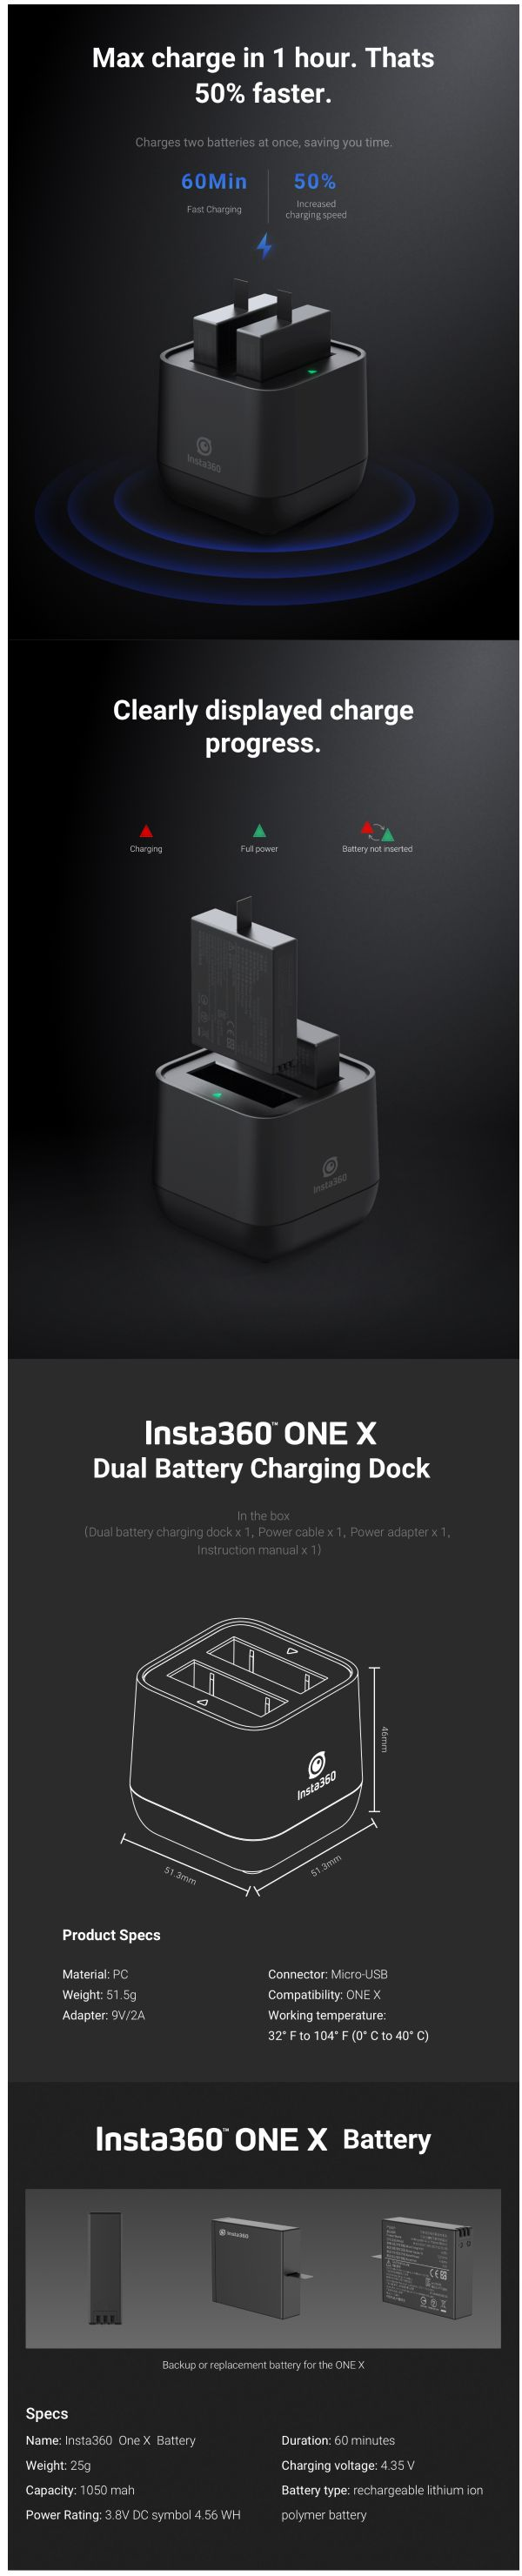 Insta360 Battery Charging Station